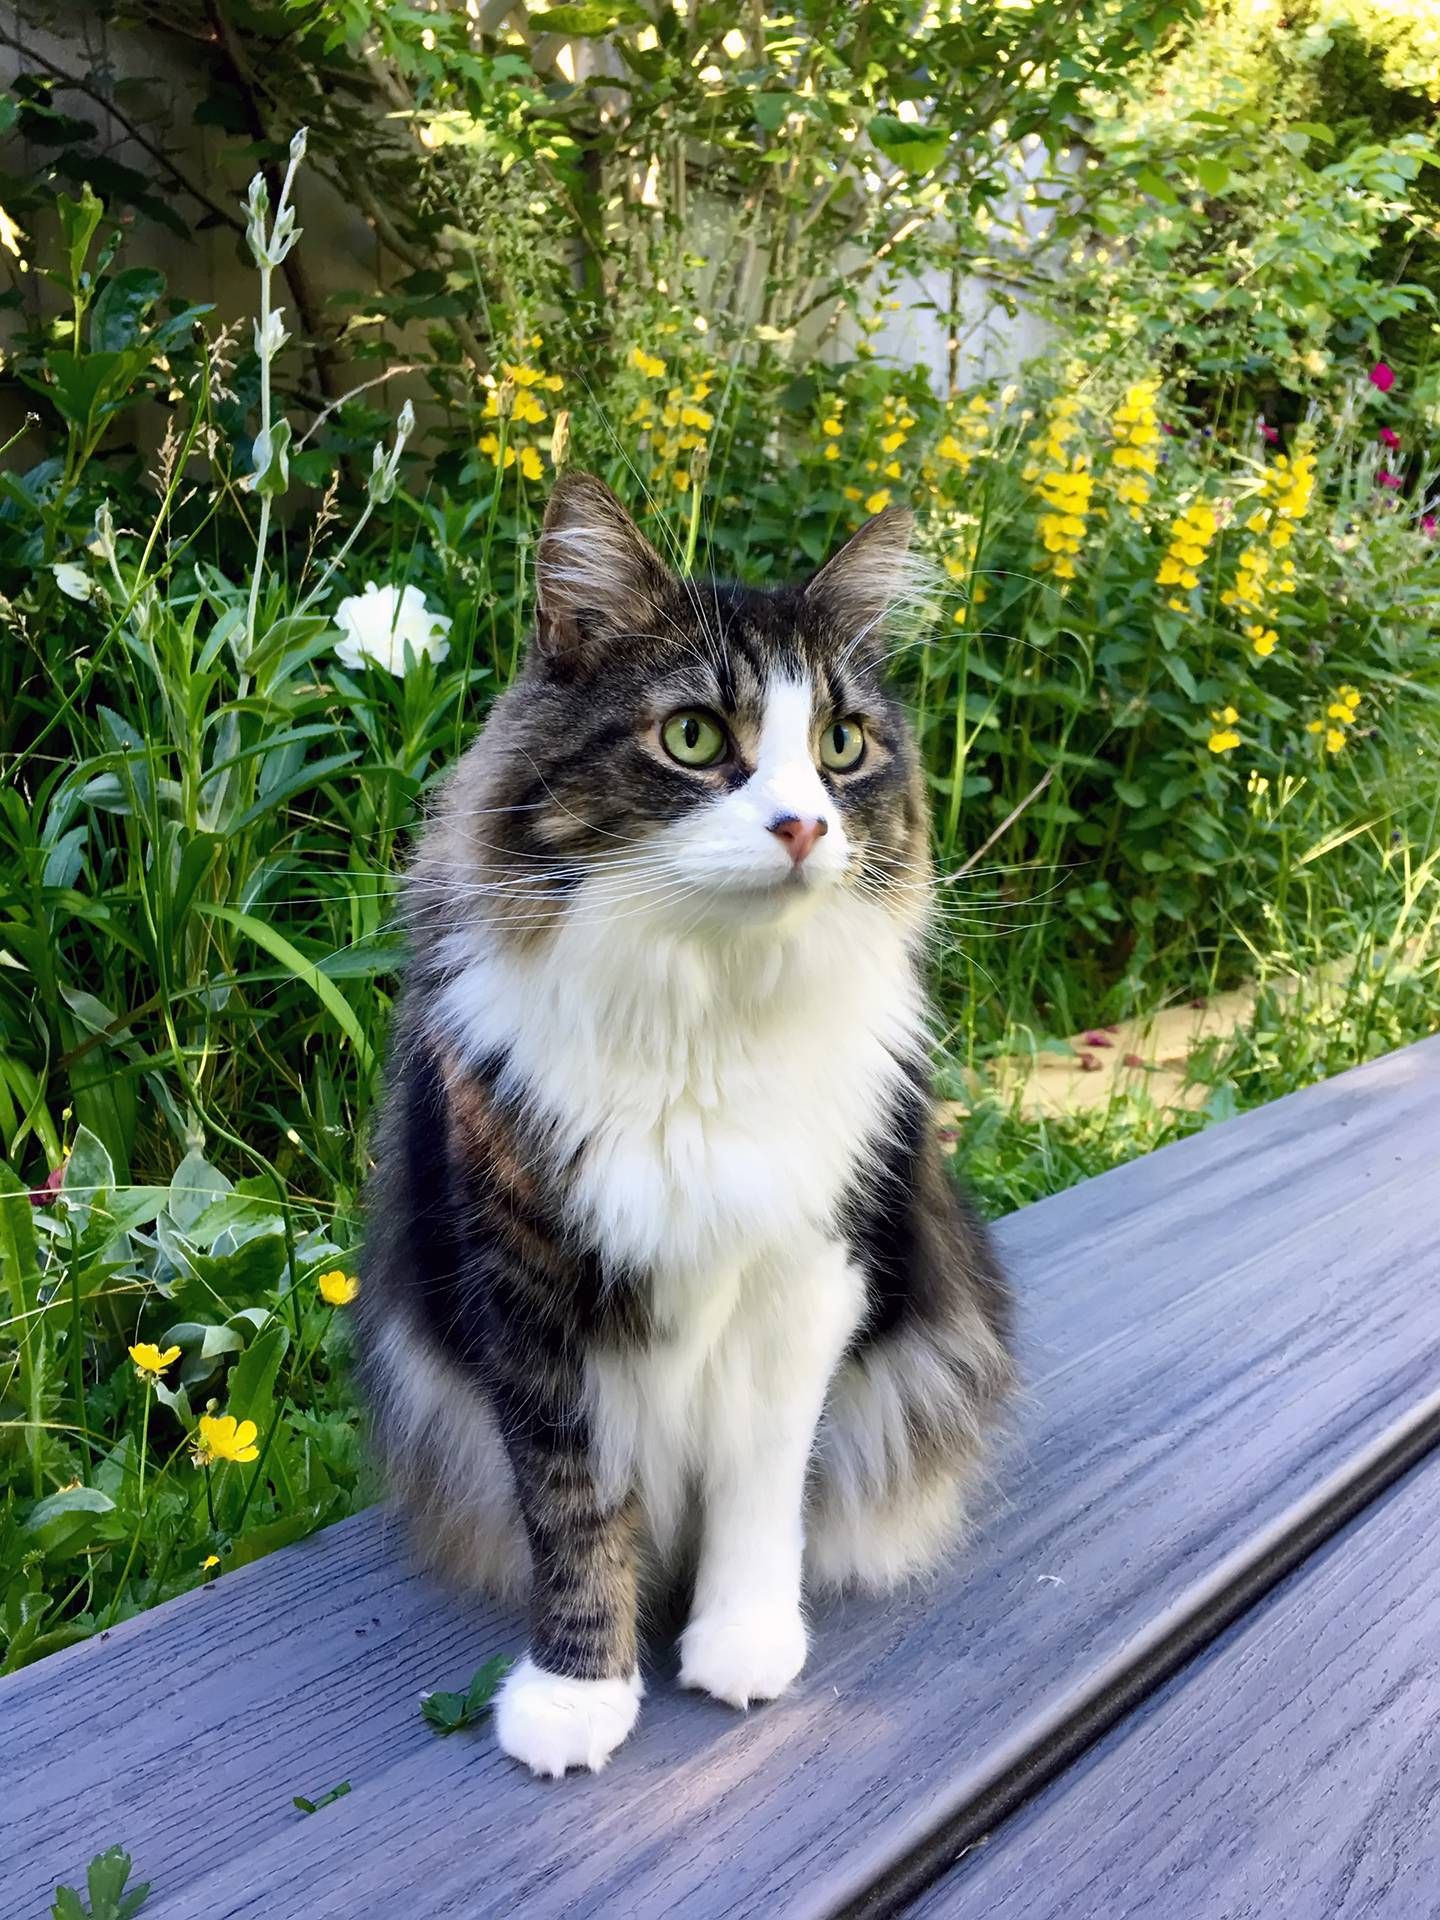 I Found This Cat In The Garden Afgan R Aww Cats Norwegian Forest Cat Beautiful Cats